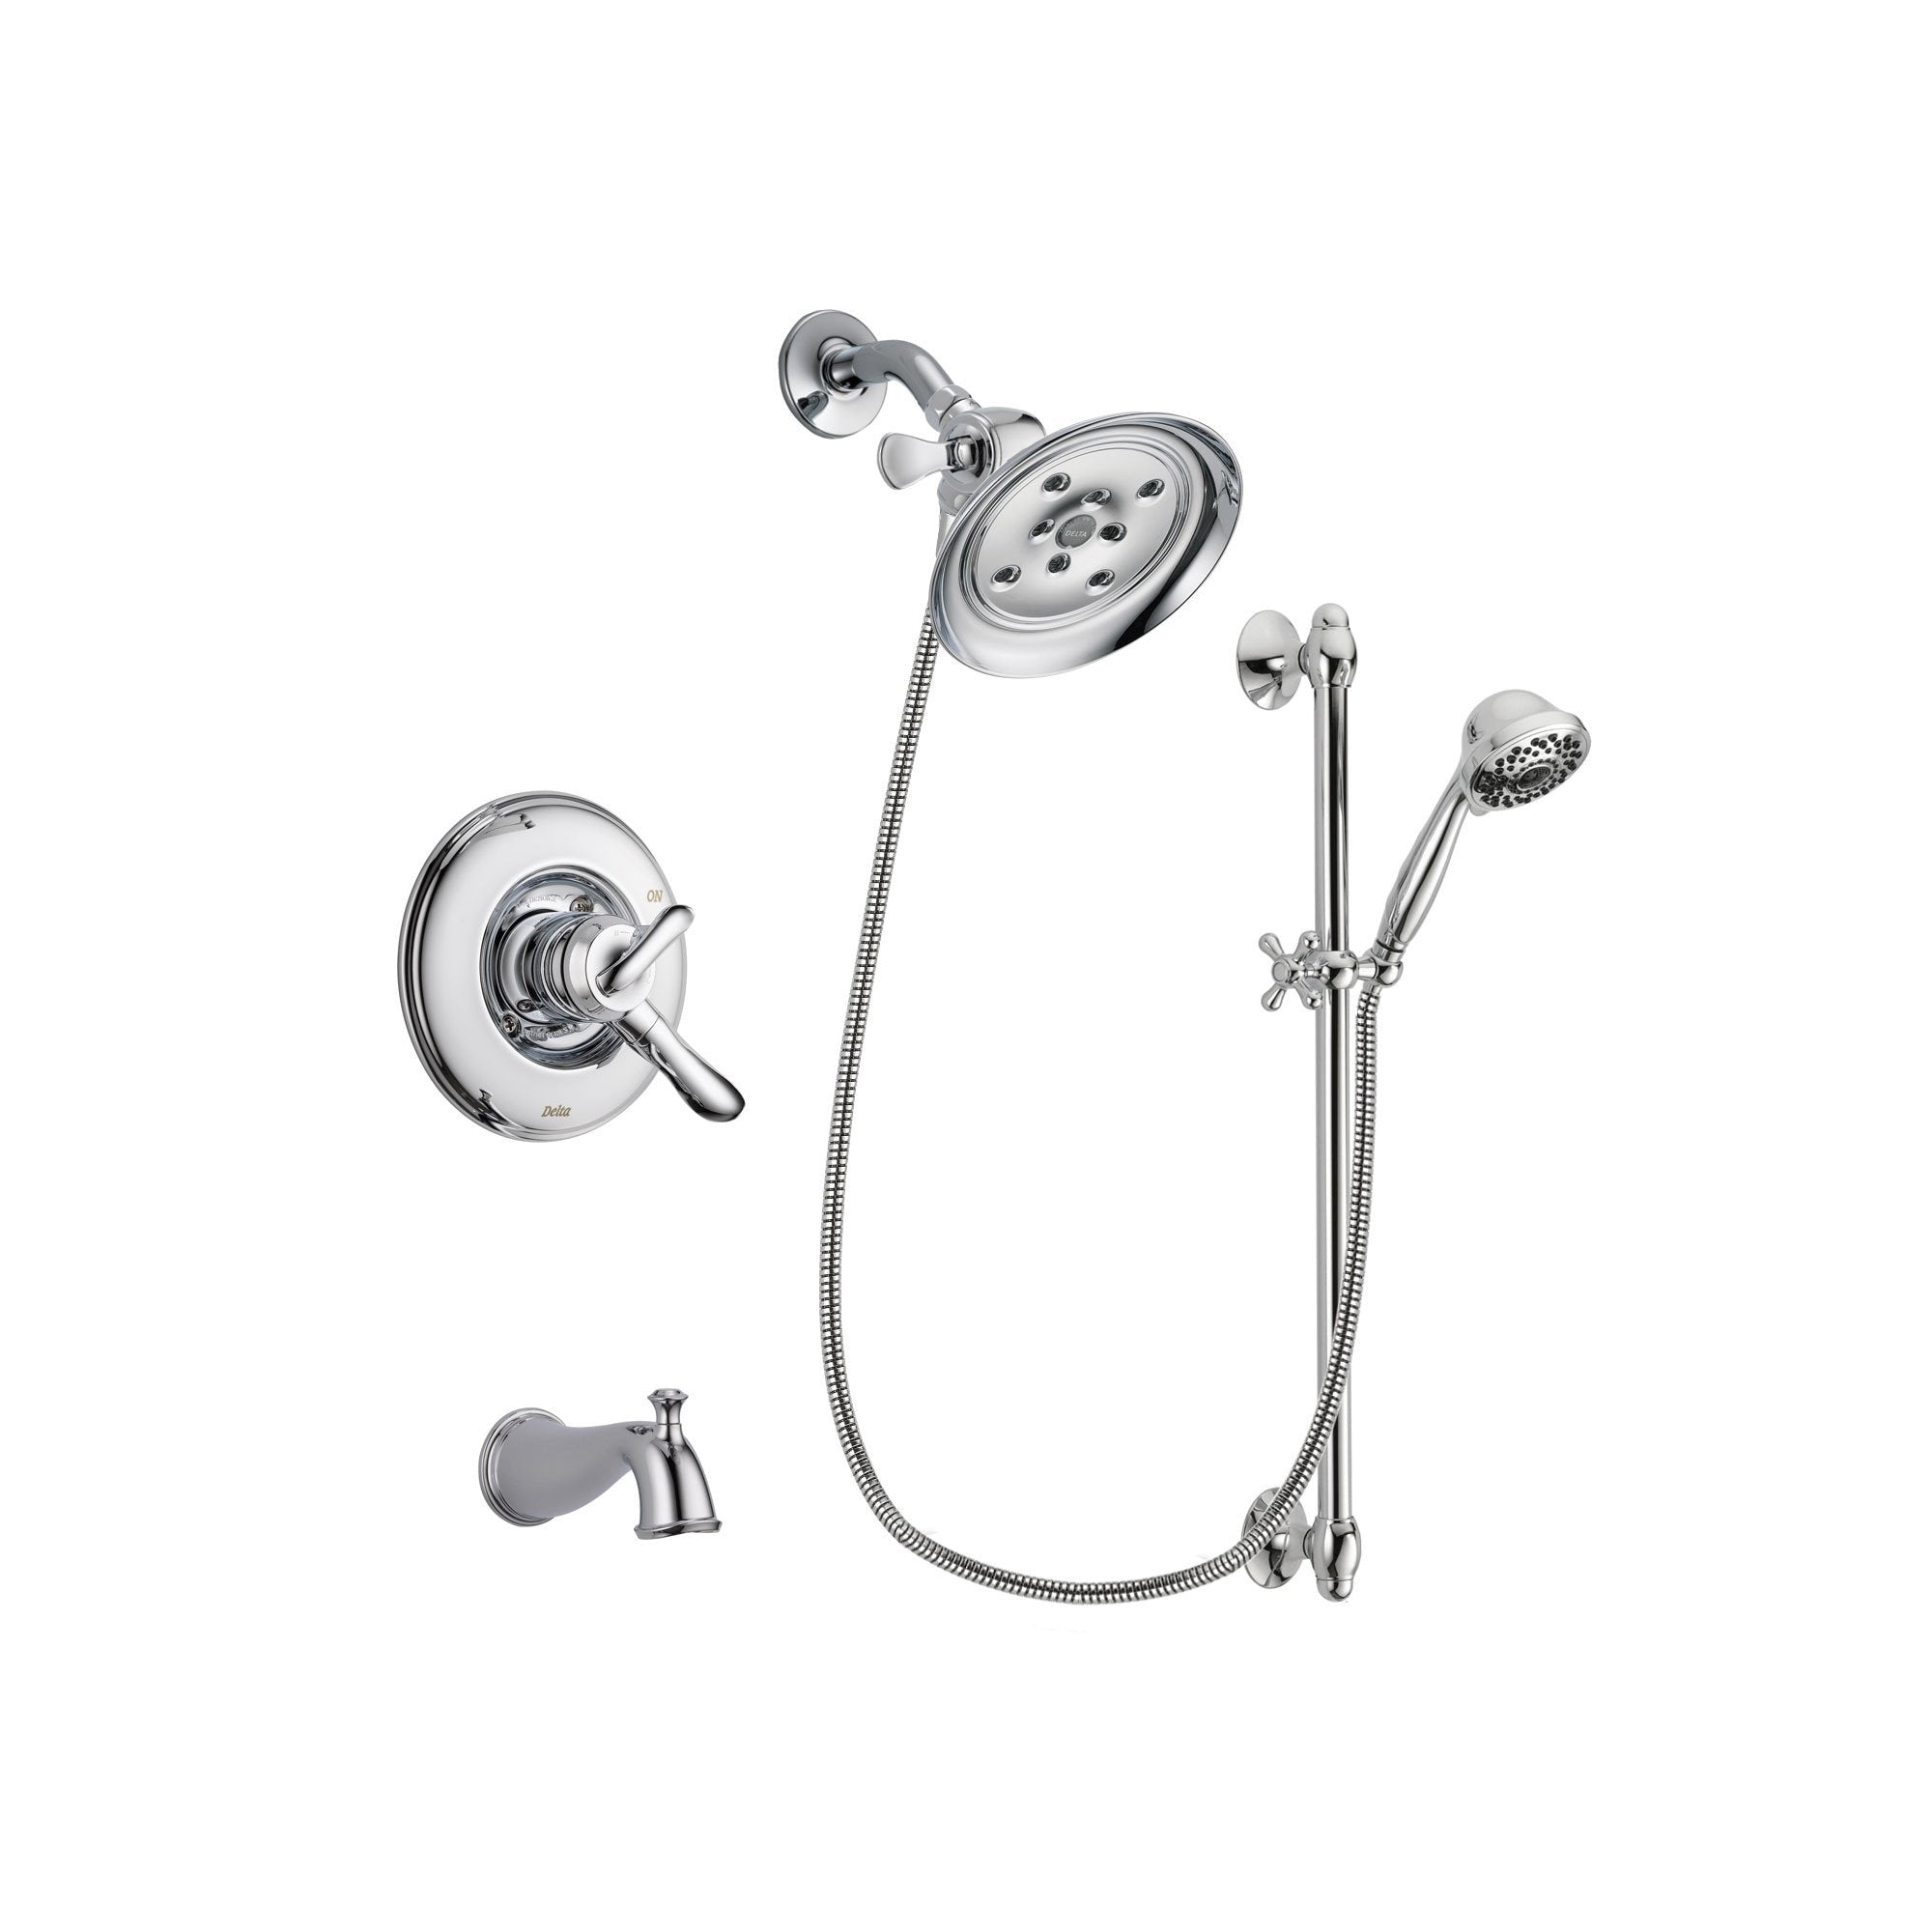 Delta Linden Chrome Tub and Shower Faucet System with Hand Shower DSP0659V